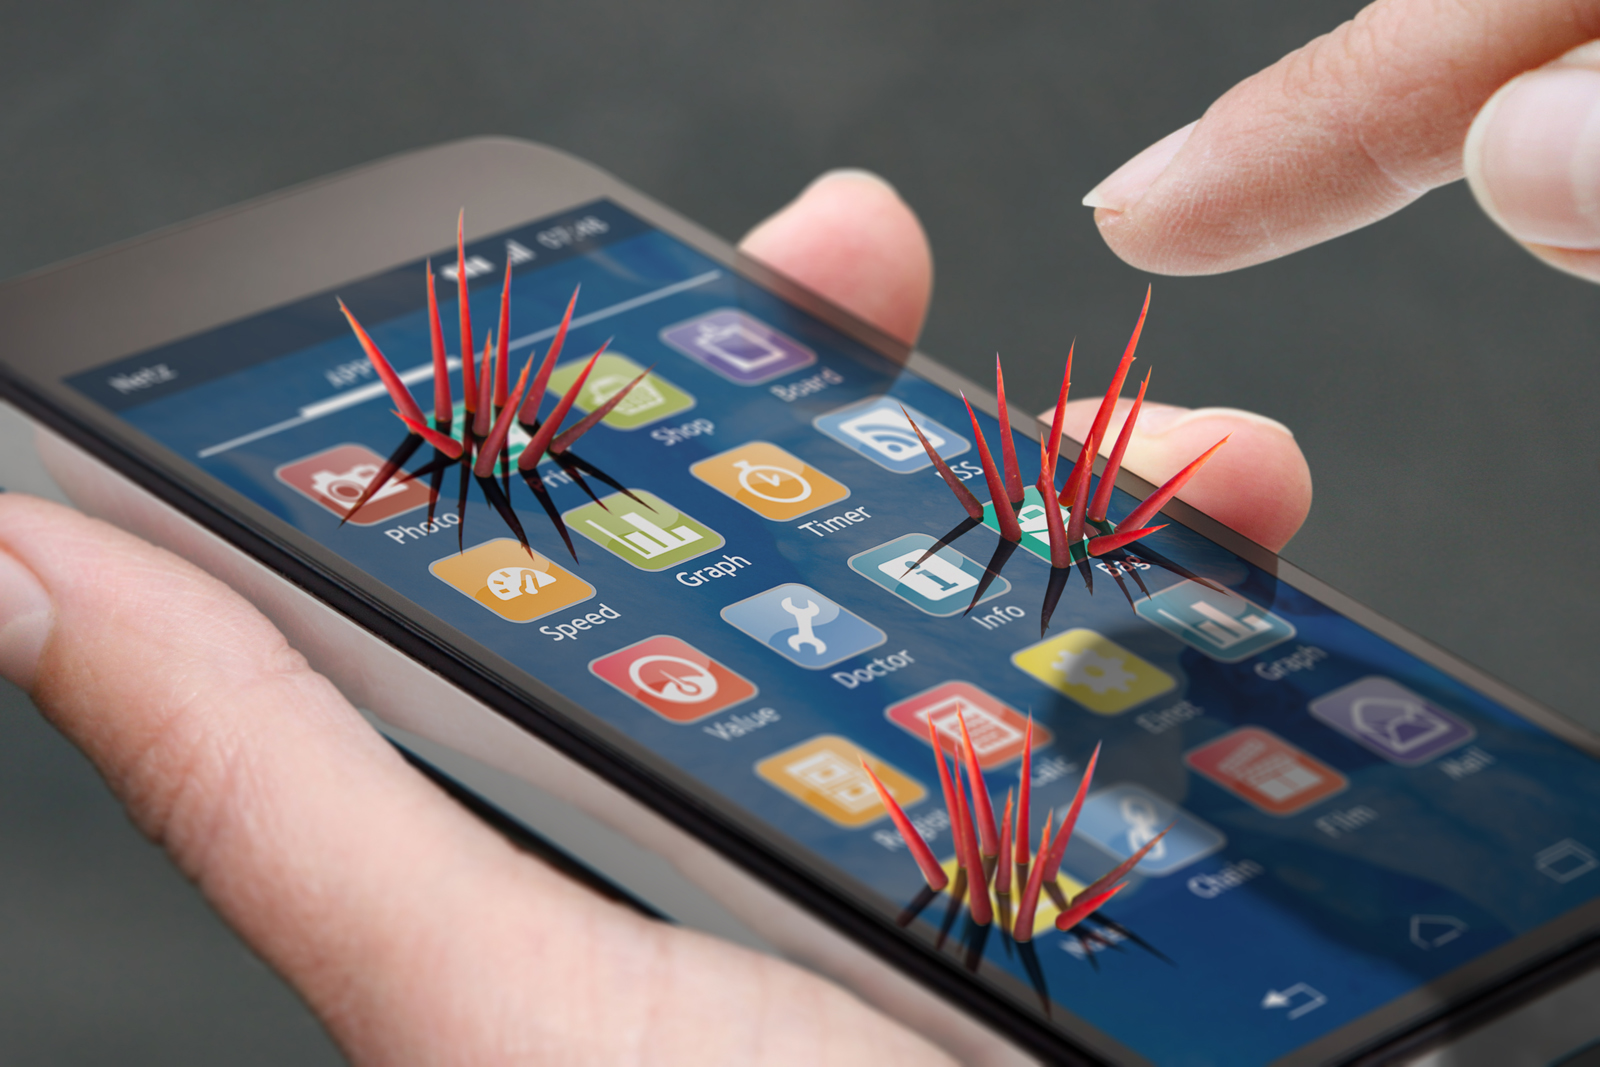 malware moviles android